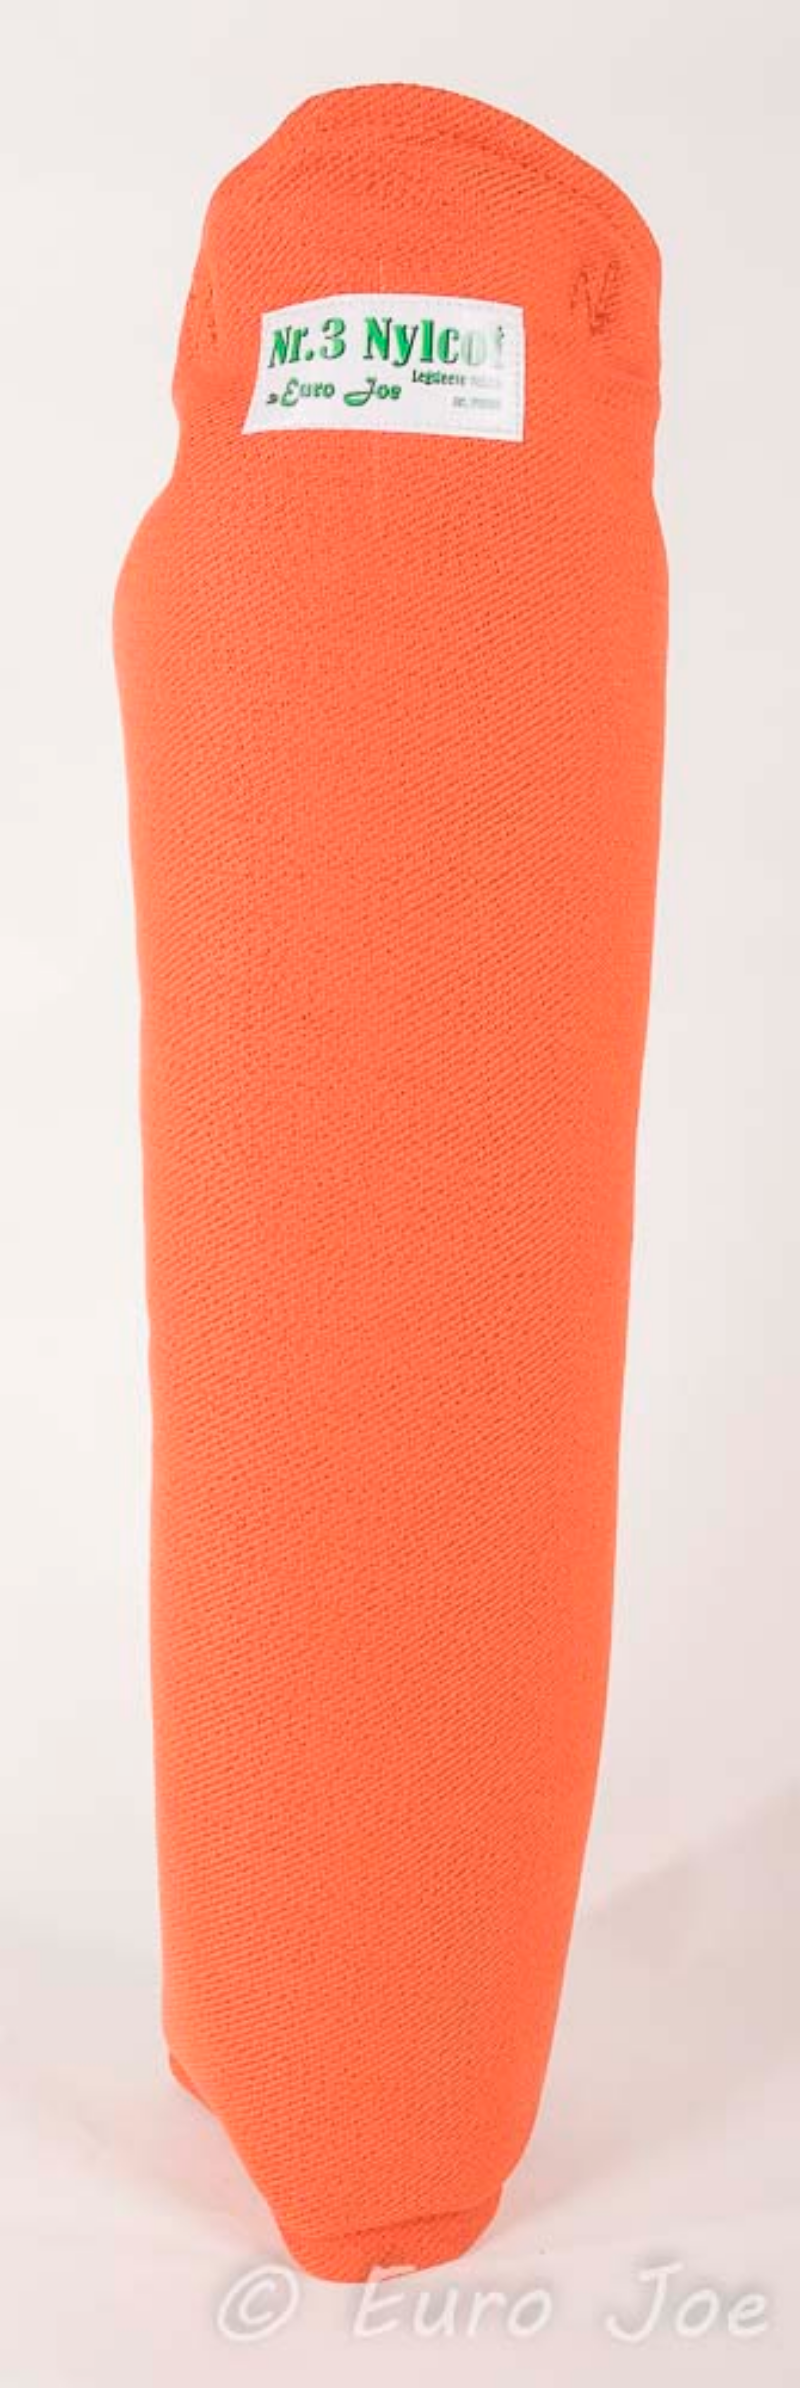 Euro-Joe-Bite-Sleeve-Leg-High-Velcro-Nylcot-No3